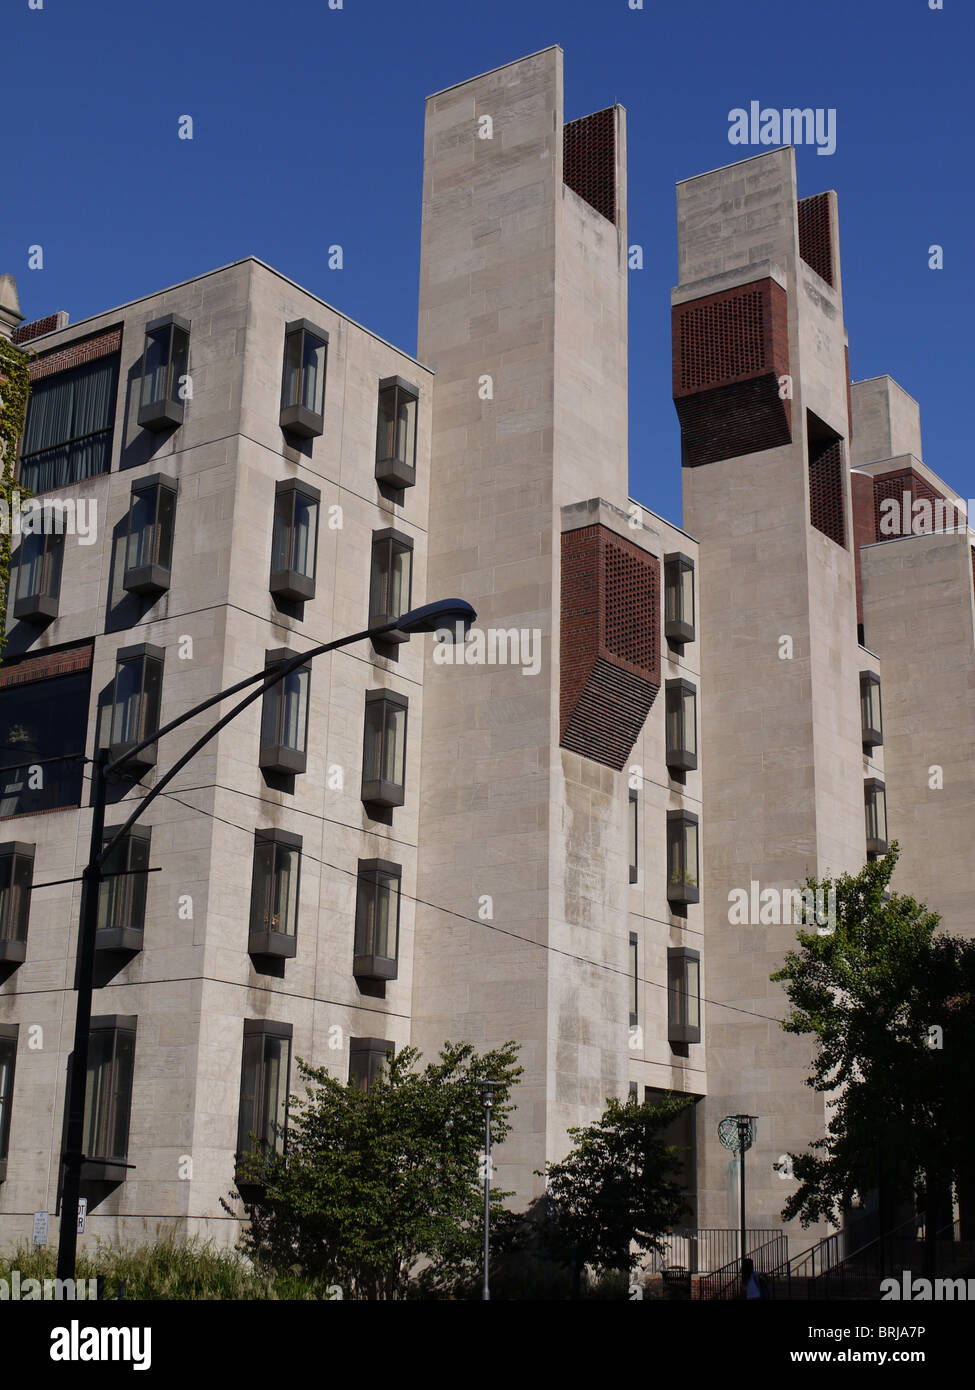 University of Chicago Modern Building Exterior - Stock Image